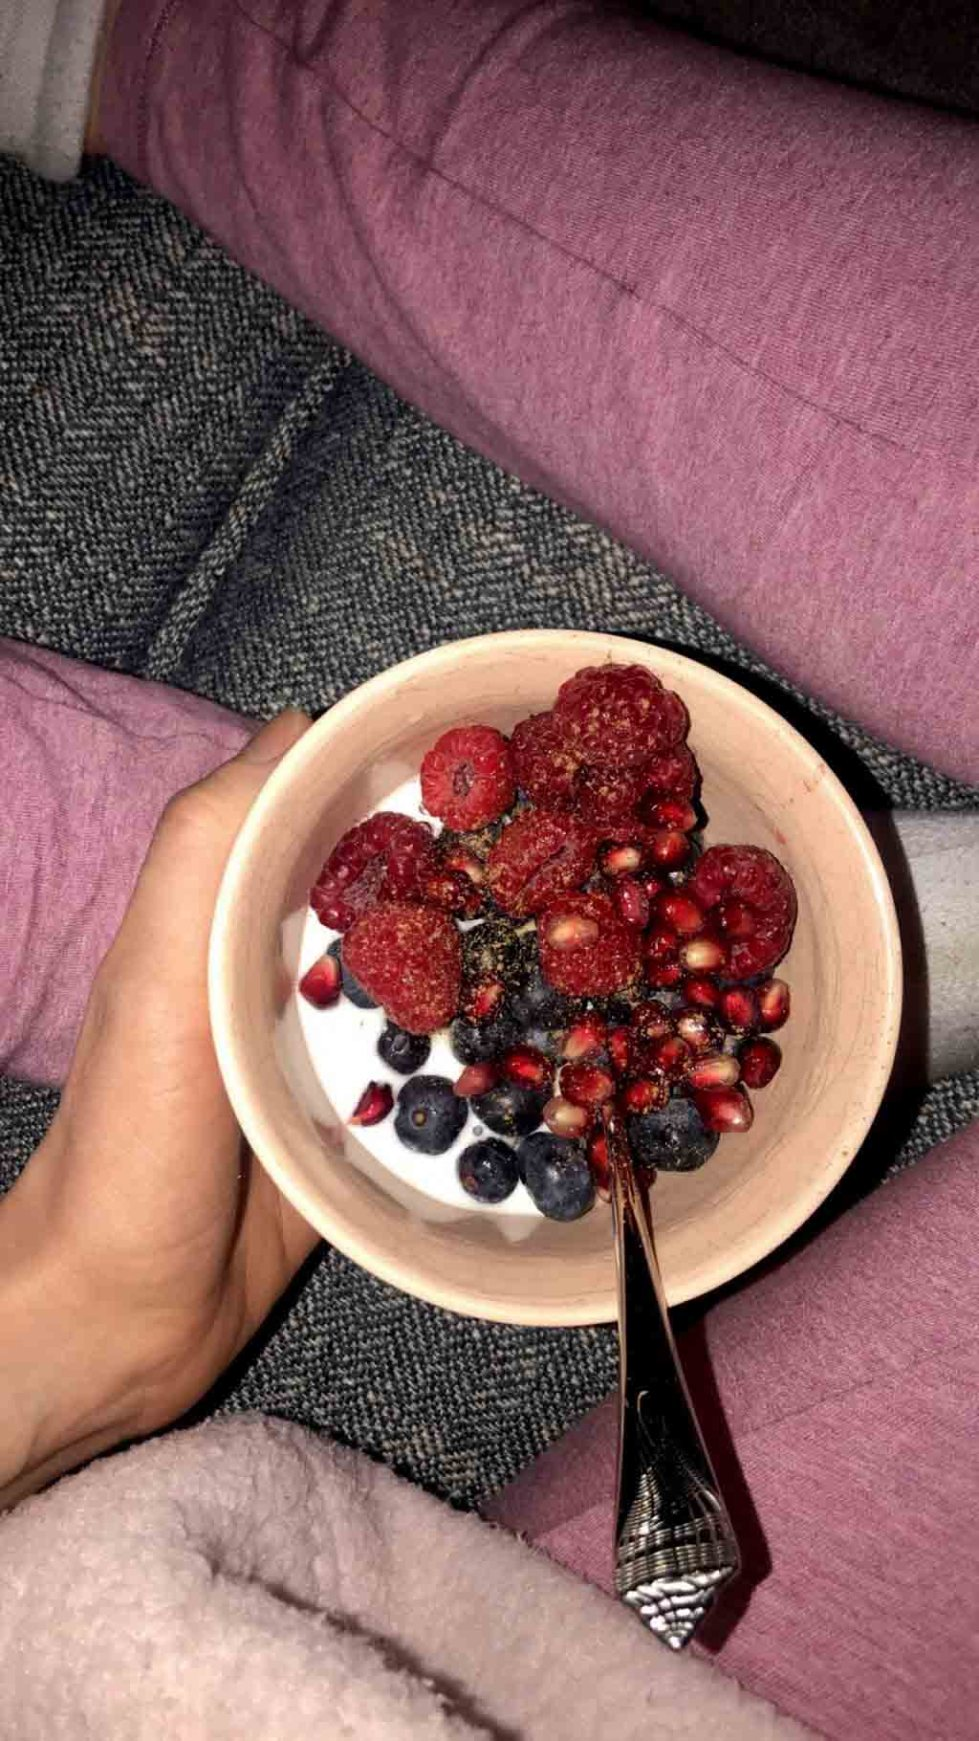 For this what I eat in a day, I had some berries and coconut cream for dessert.